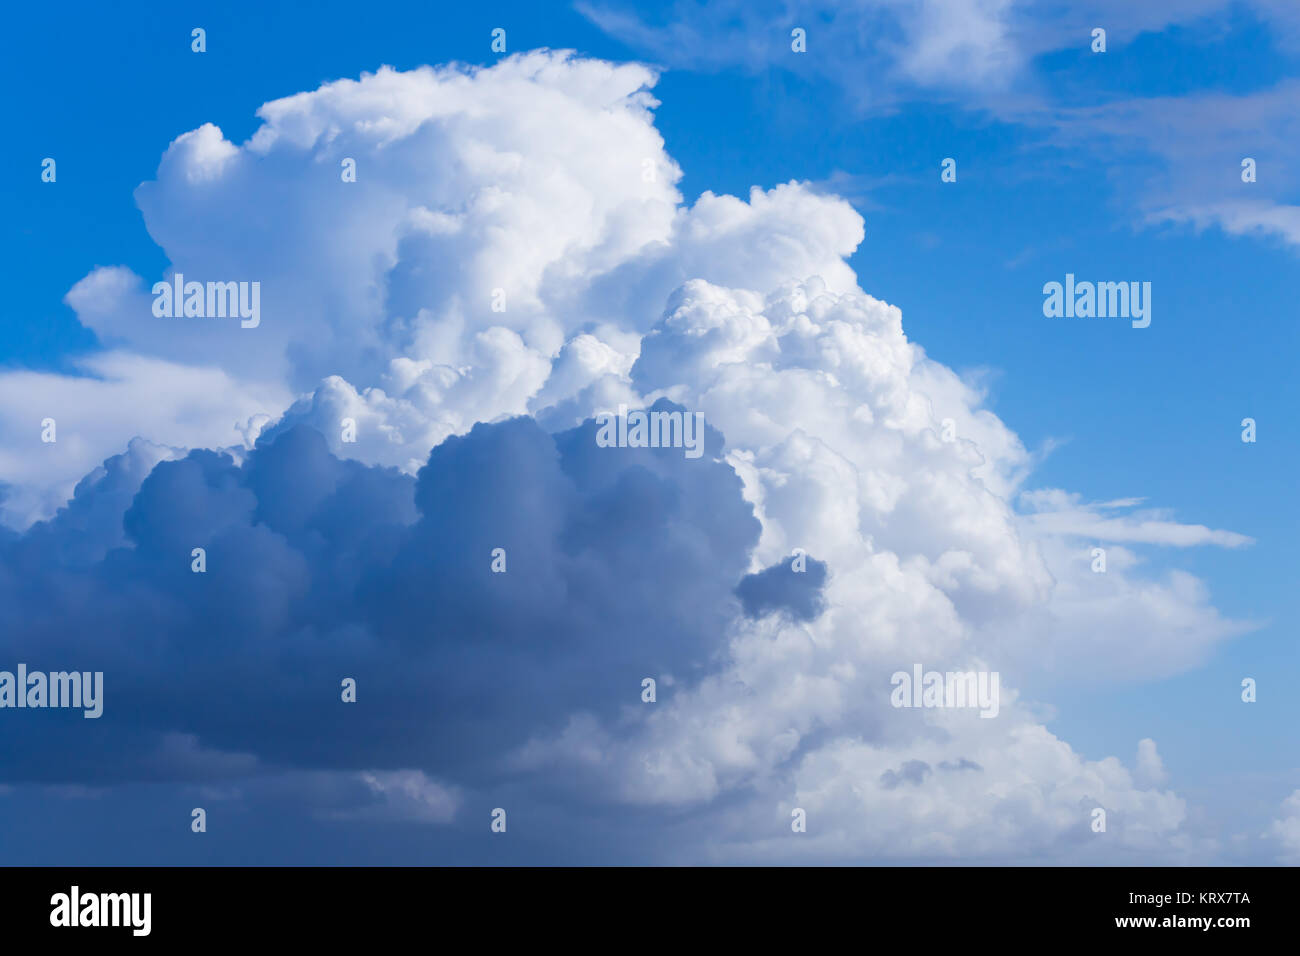 Clouds with blue sky - Stock Image